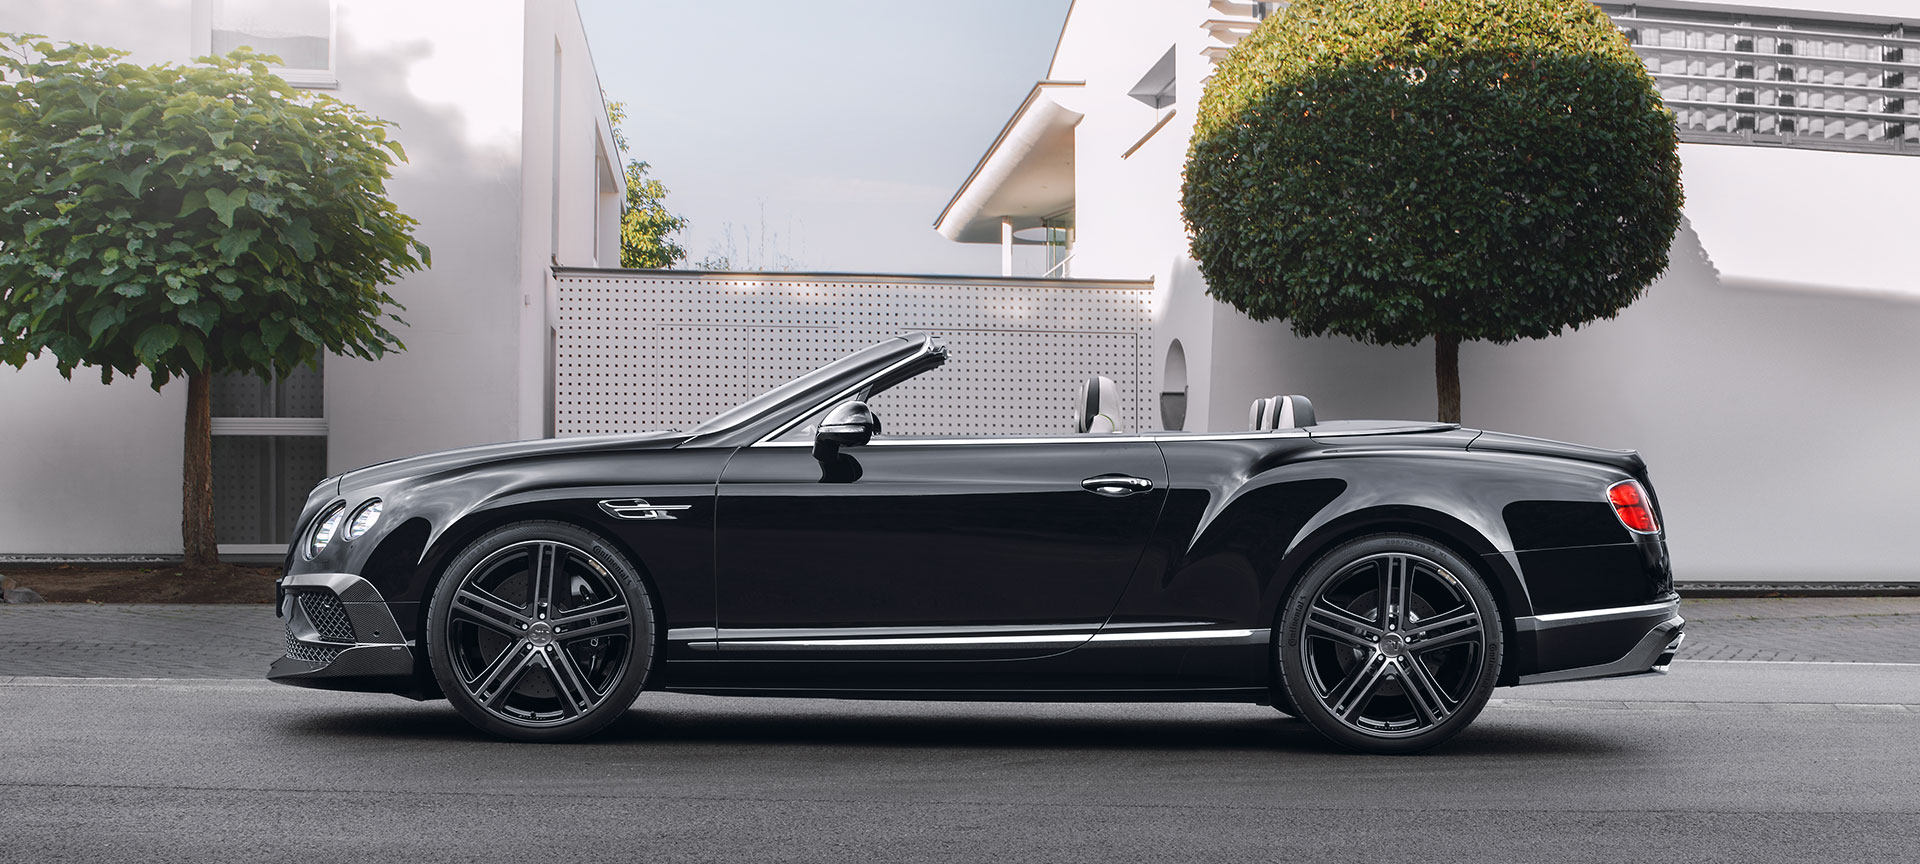 as luxury sections continental stand of bodywork automobile motors picture ltd covers at s wheels protective completed production they and plant automobiles on event bentley material